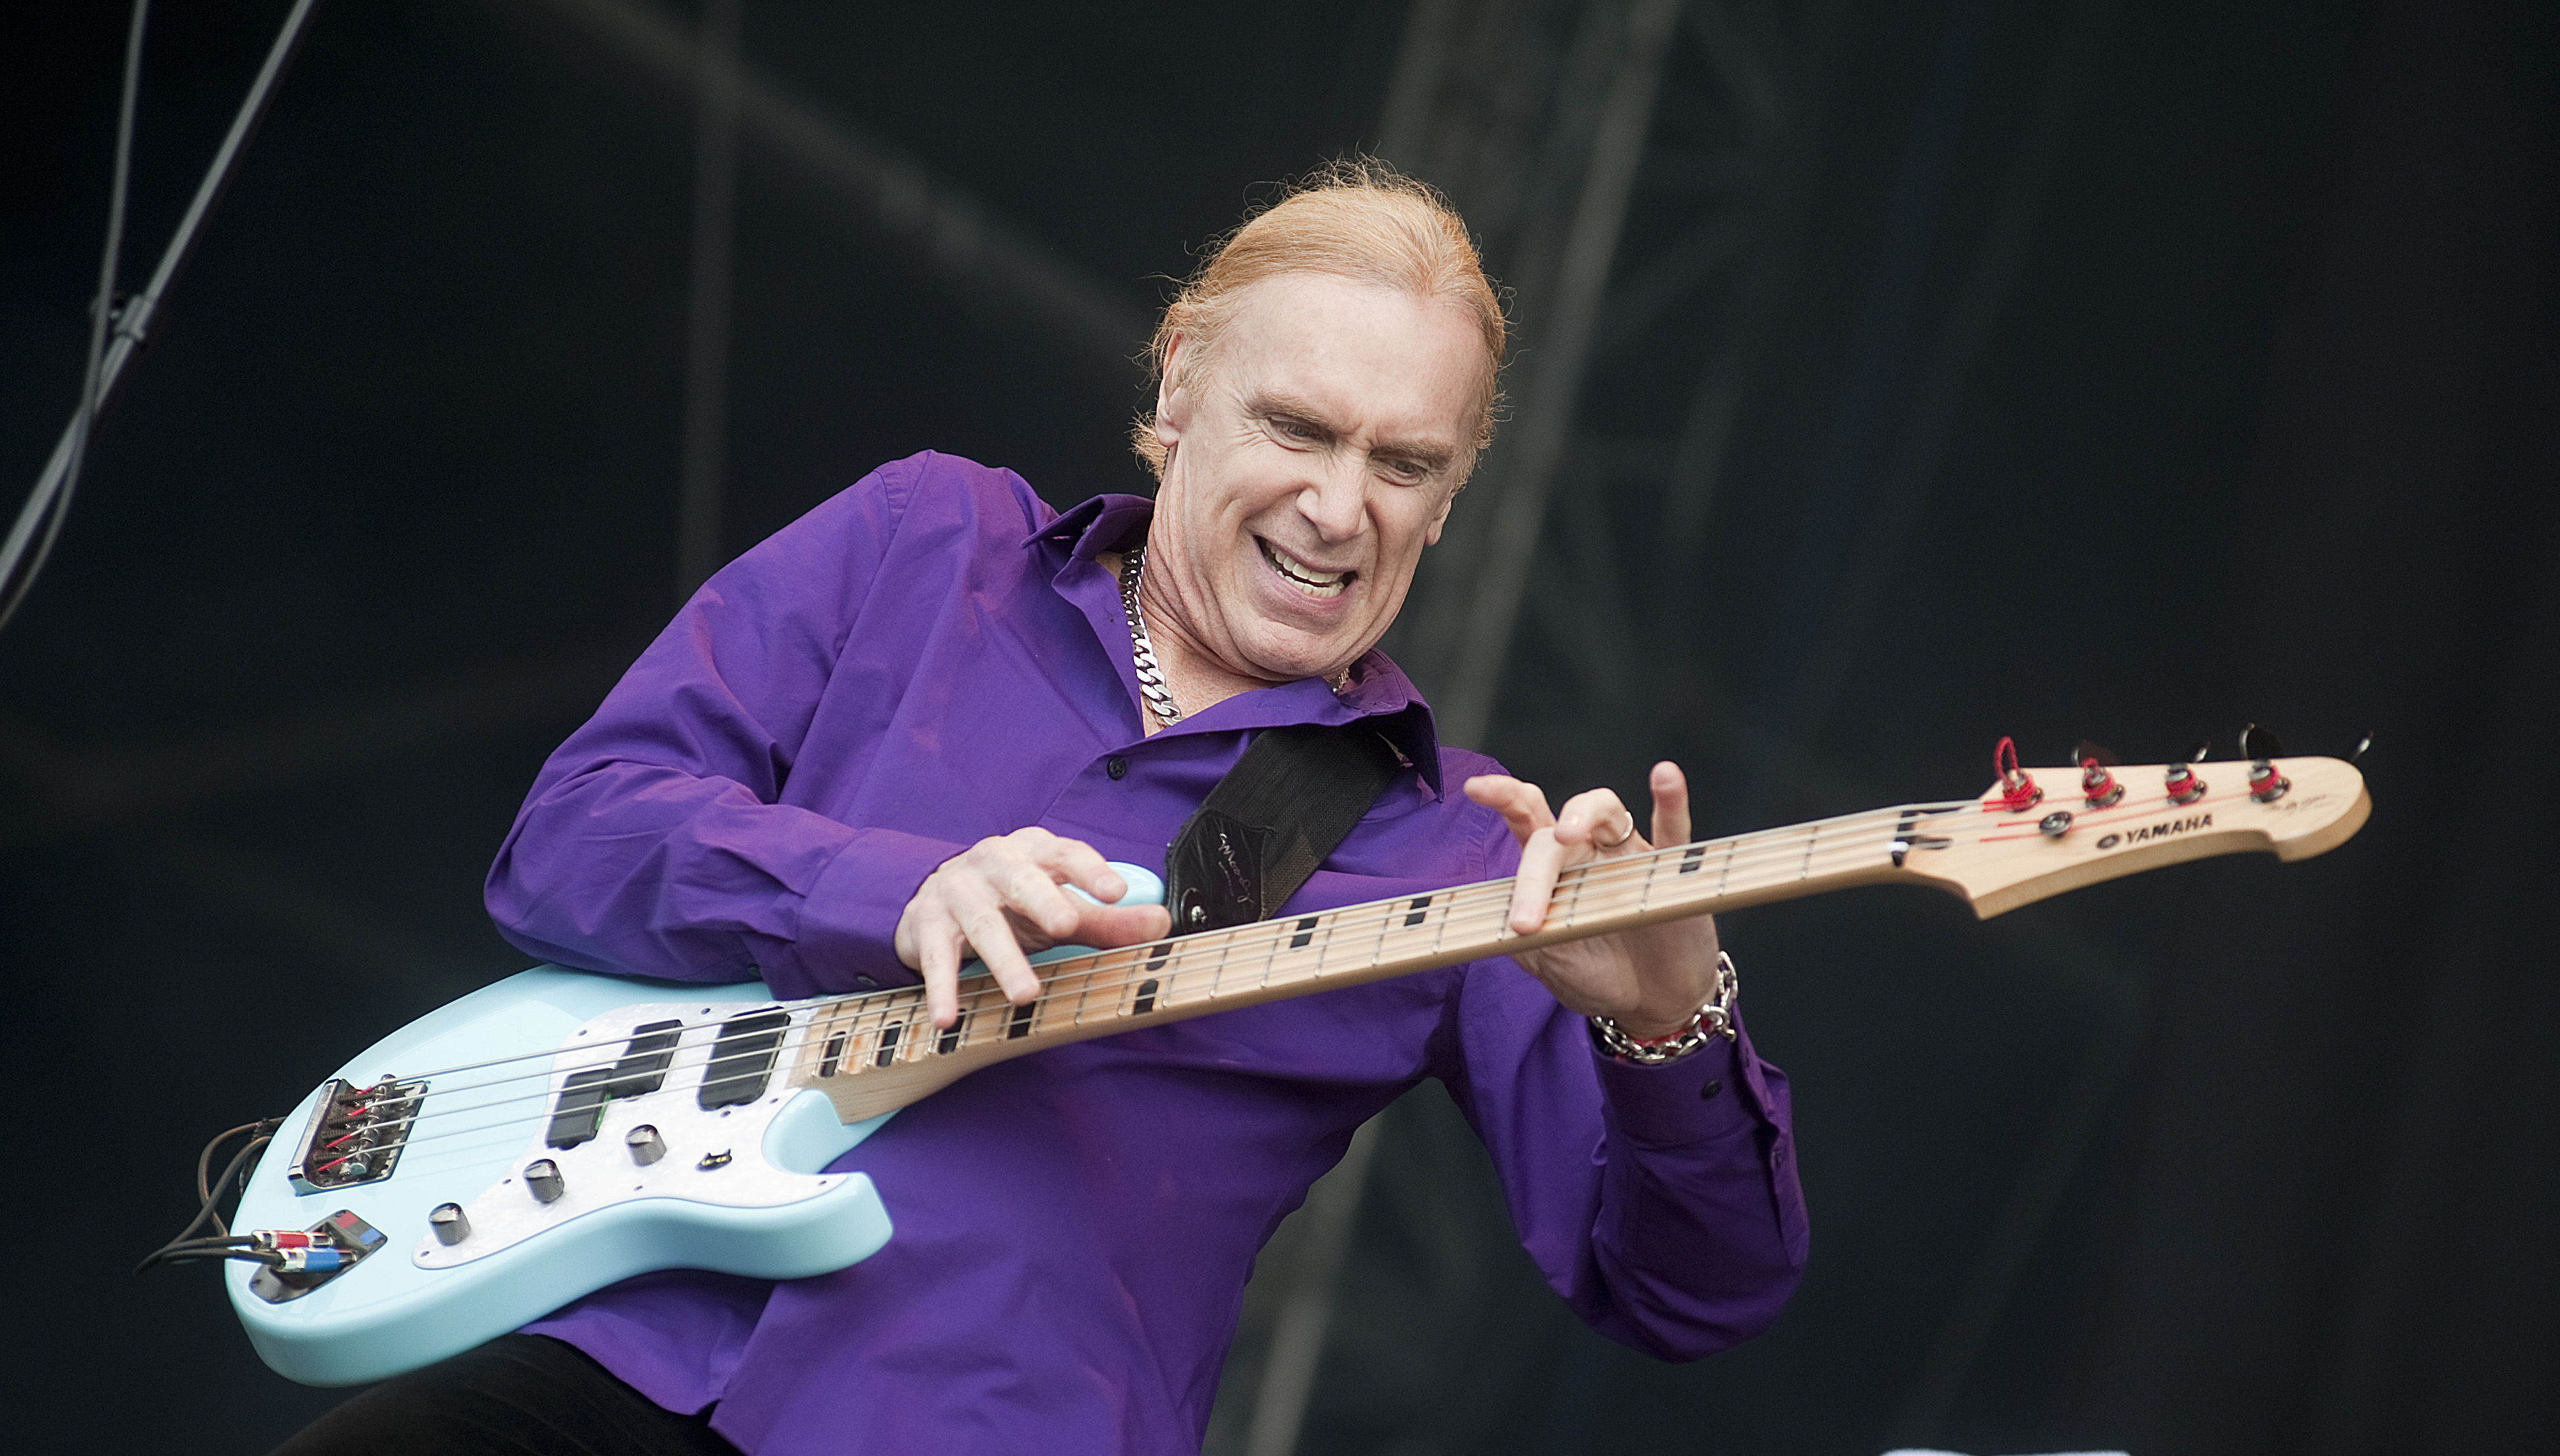 Billy Sheehan I Was Offered The Van Halen Position As Bassist Three Times Musicradar